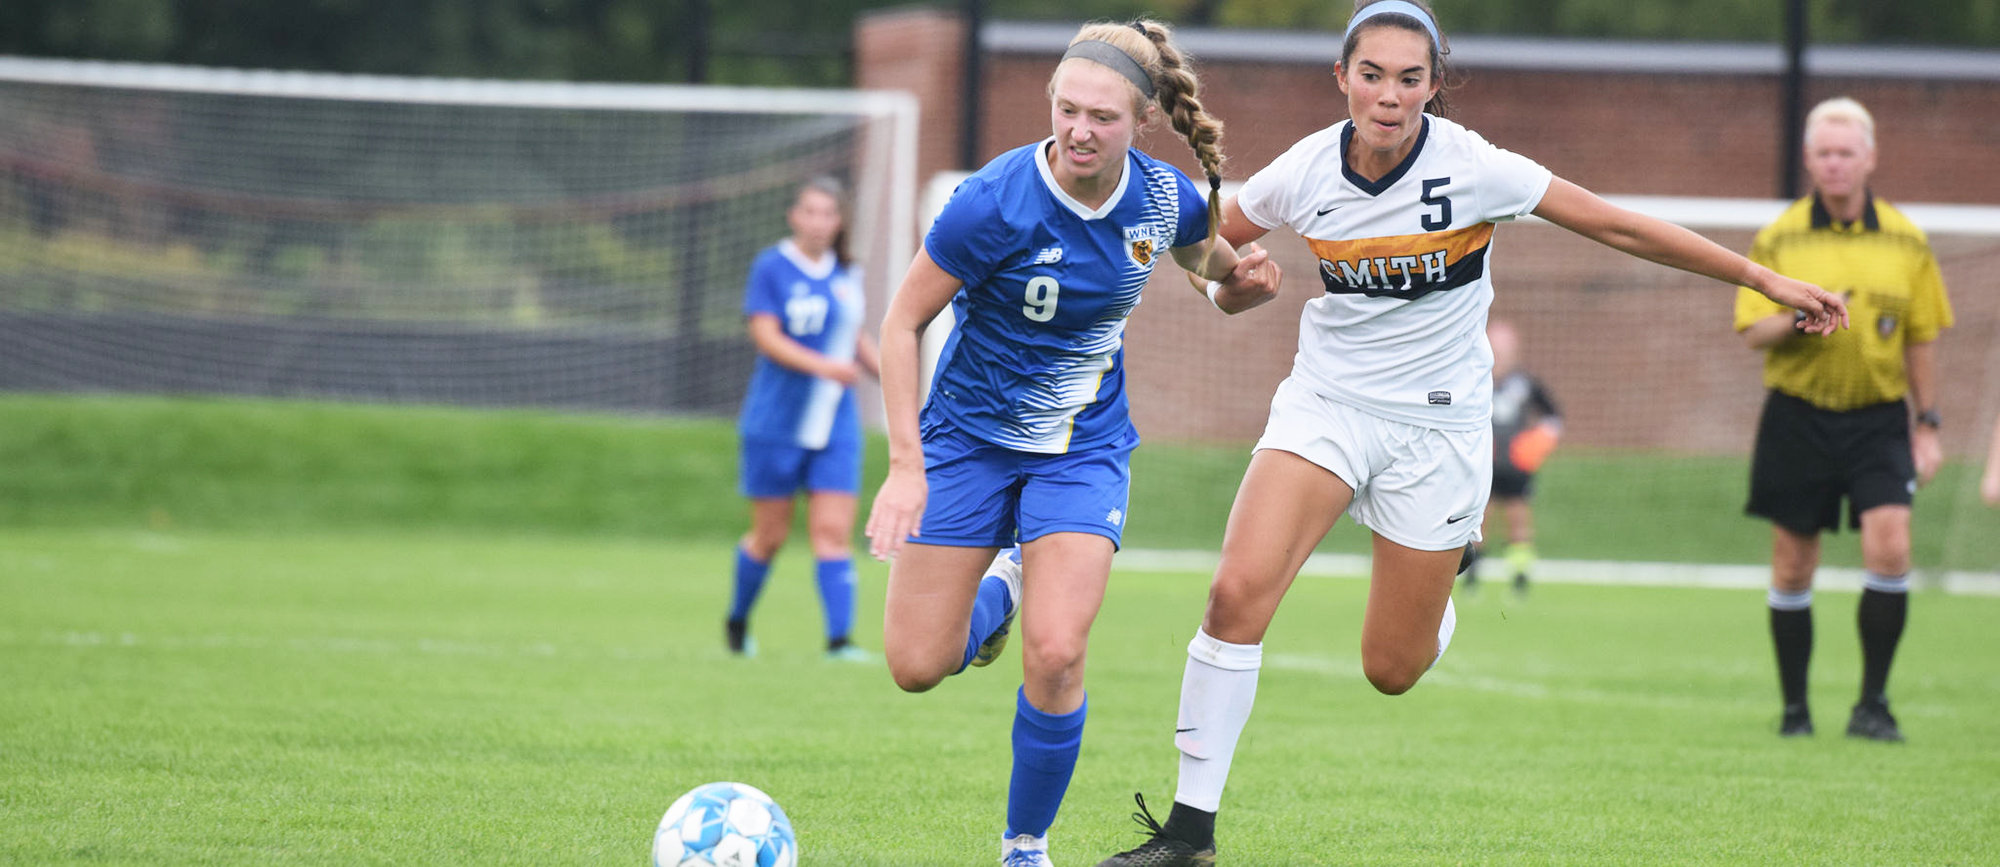 Sophomore Christina Sordi scored her second goal of the season late in regulation as WNE rallied to earn a 1-1 draw at Roger Williams on Tuesday night. (Photo by Rachael Margossian)